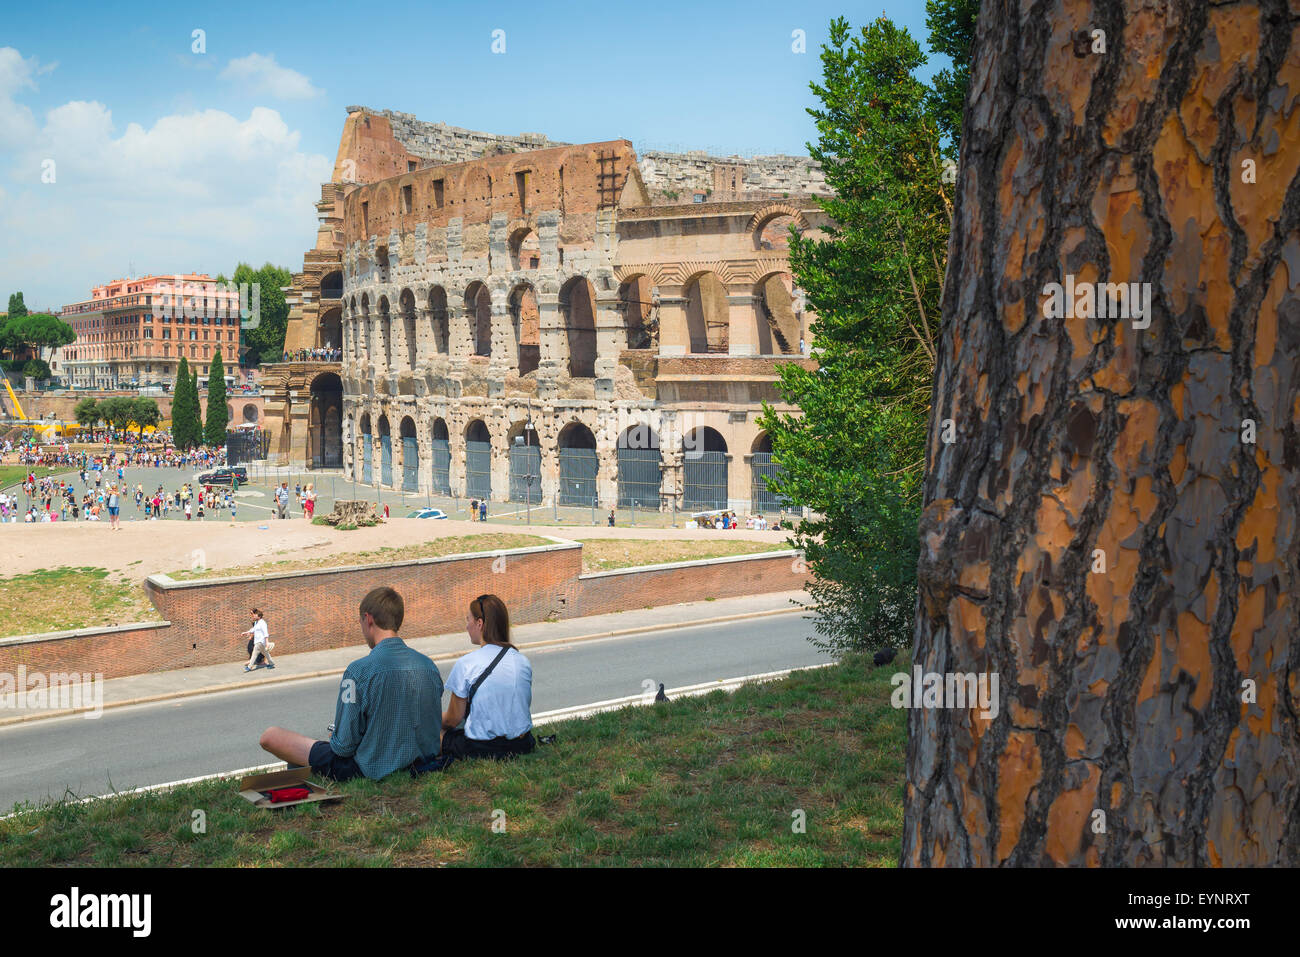 Colosseum Rome, view of tourists sitting in the Parco del Celio facing the Colosseum in the centre of Rome, Italy. - Stock Image